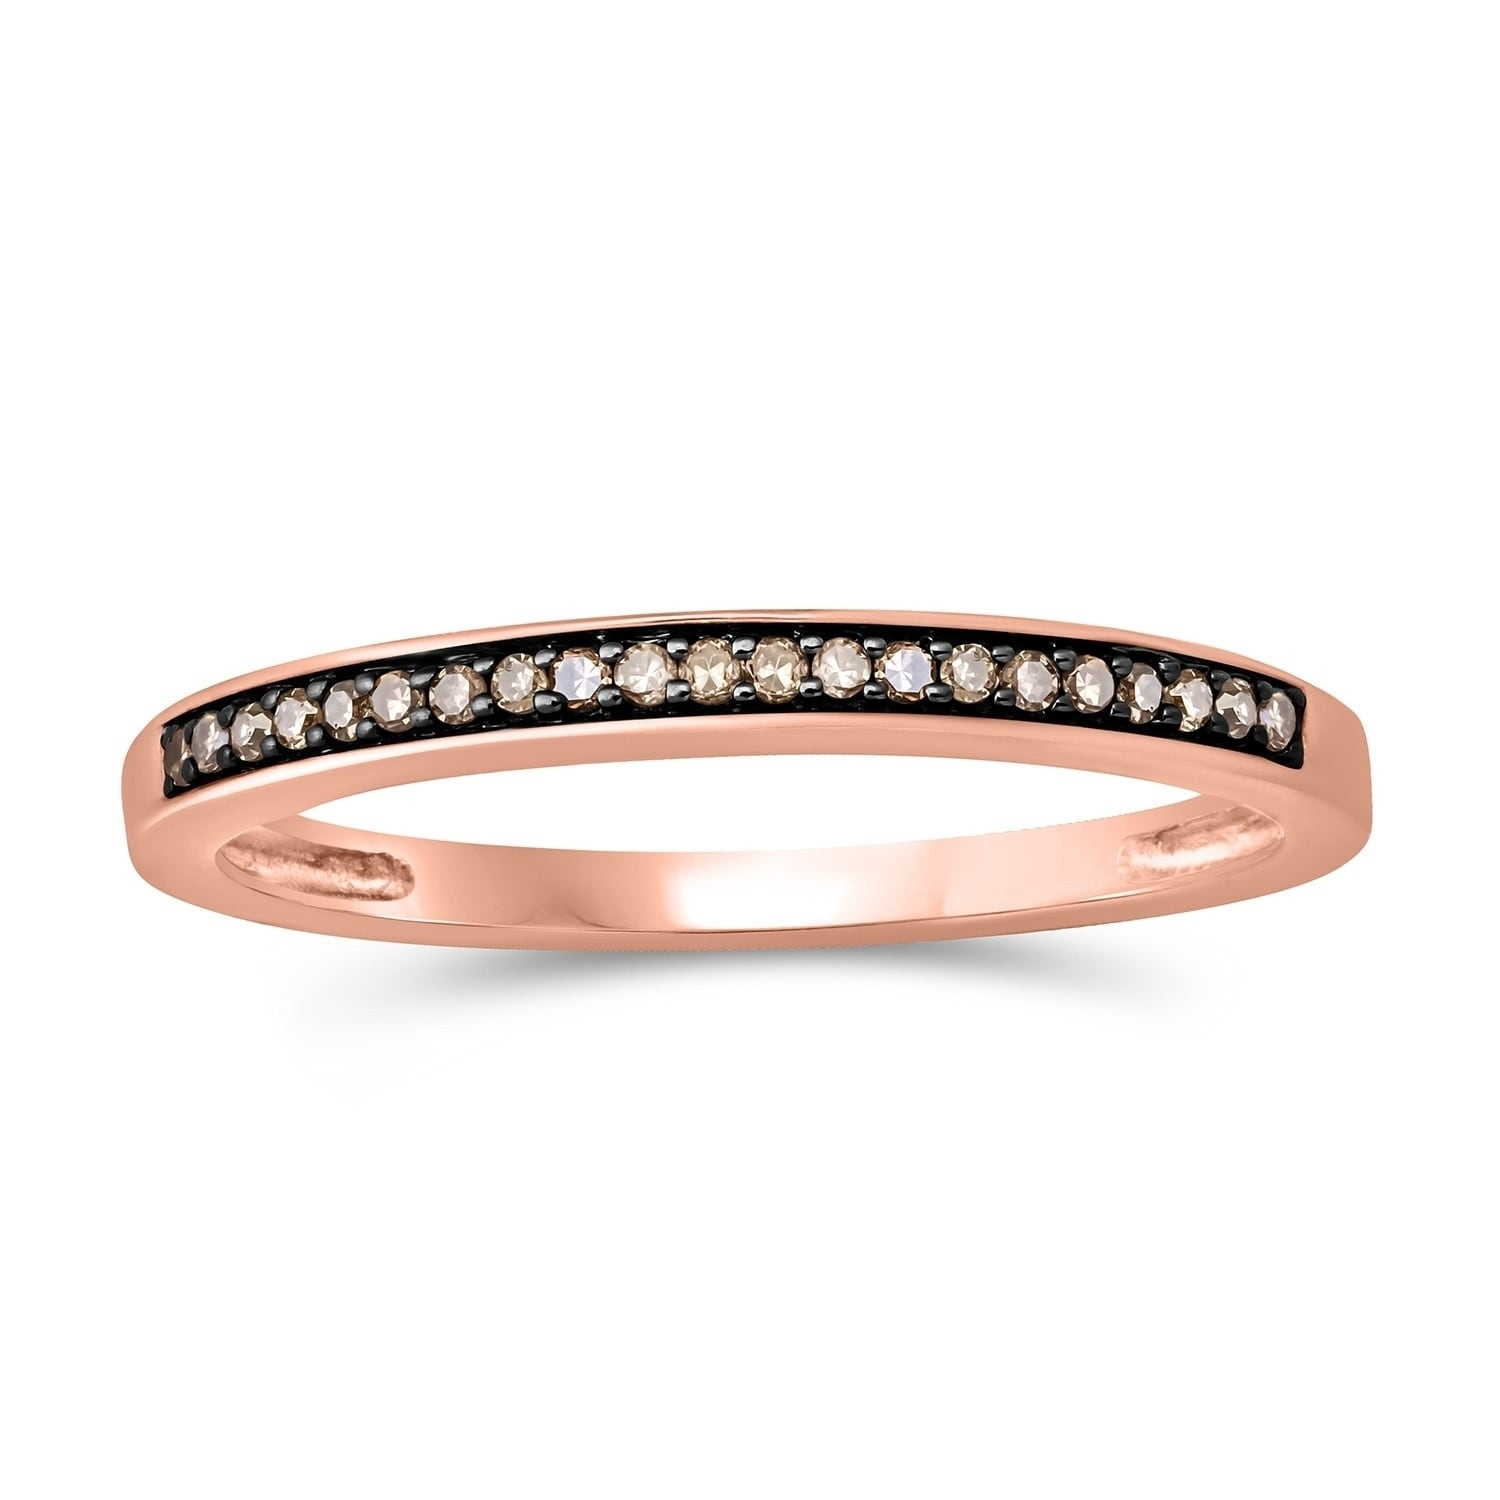 Shop 10k Rose Gold 1/10ct Tdw Champagne Diamond Anniversary Band With Regard To Most Popular Diamond Twist Anniversary Bands In 10k Rose Gold (View 13 of 15)